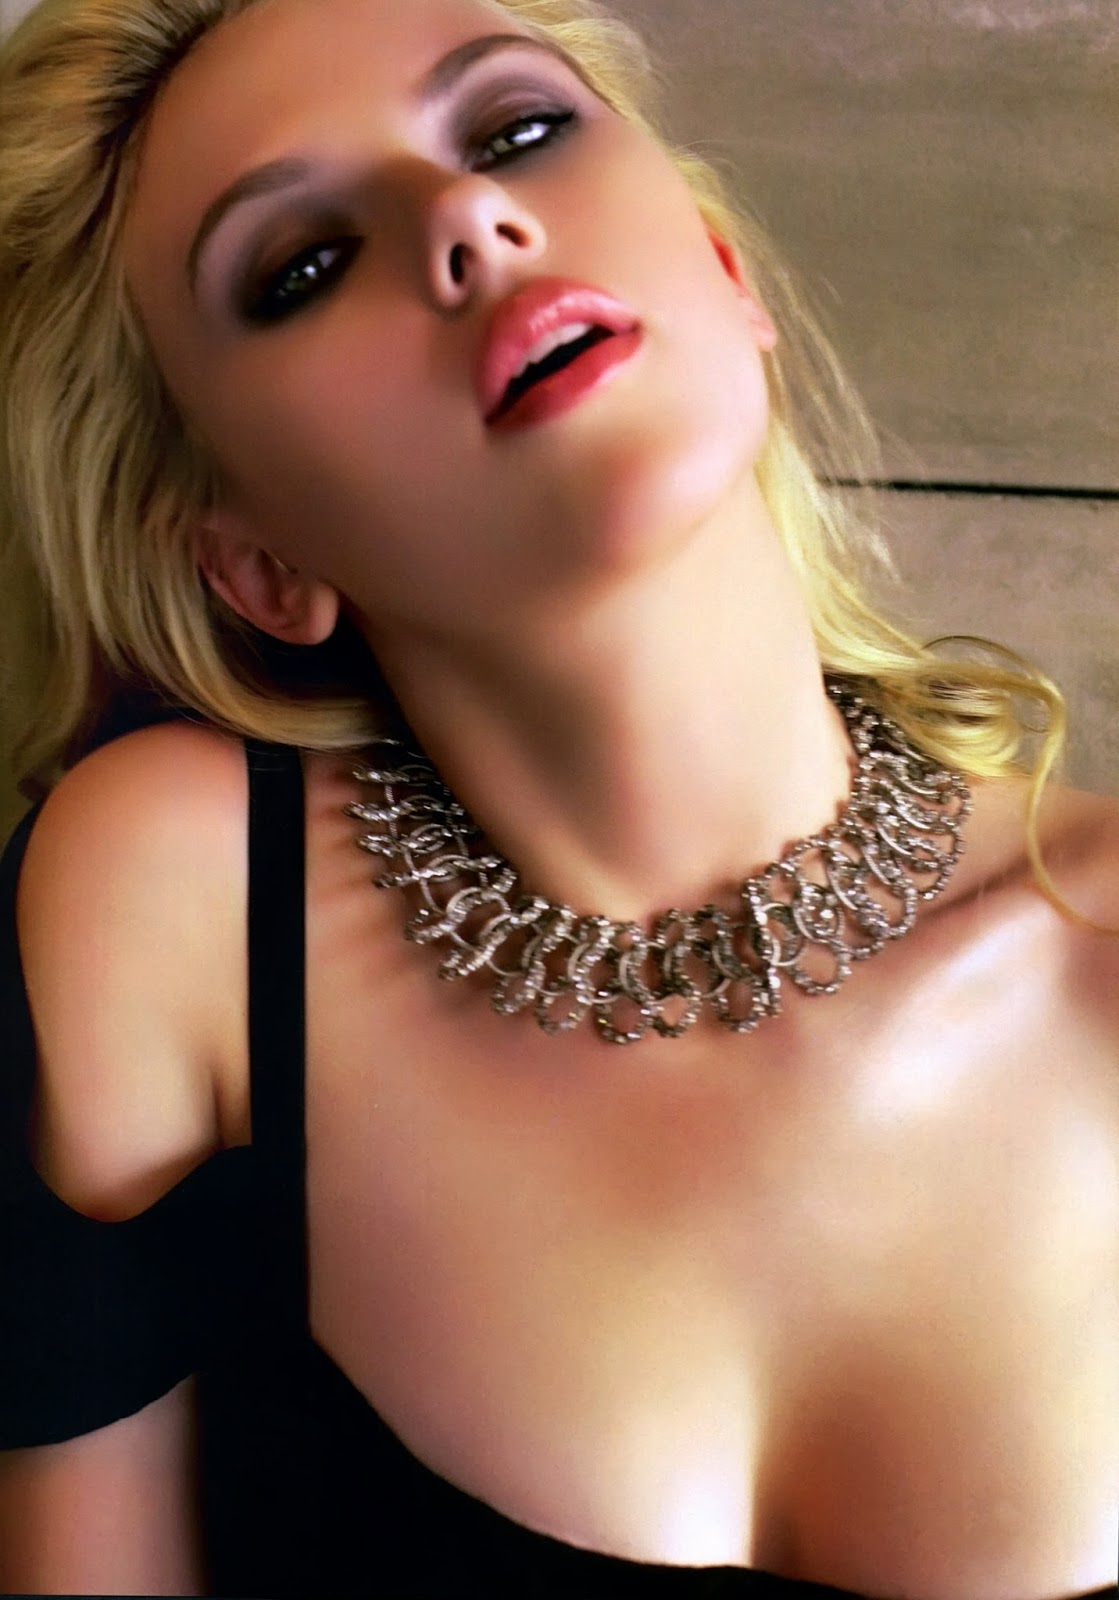 Most Amazing Facts About Scarlett Johansson Is Sexiest